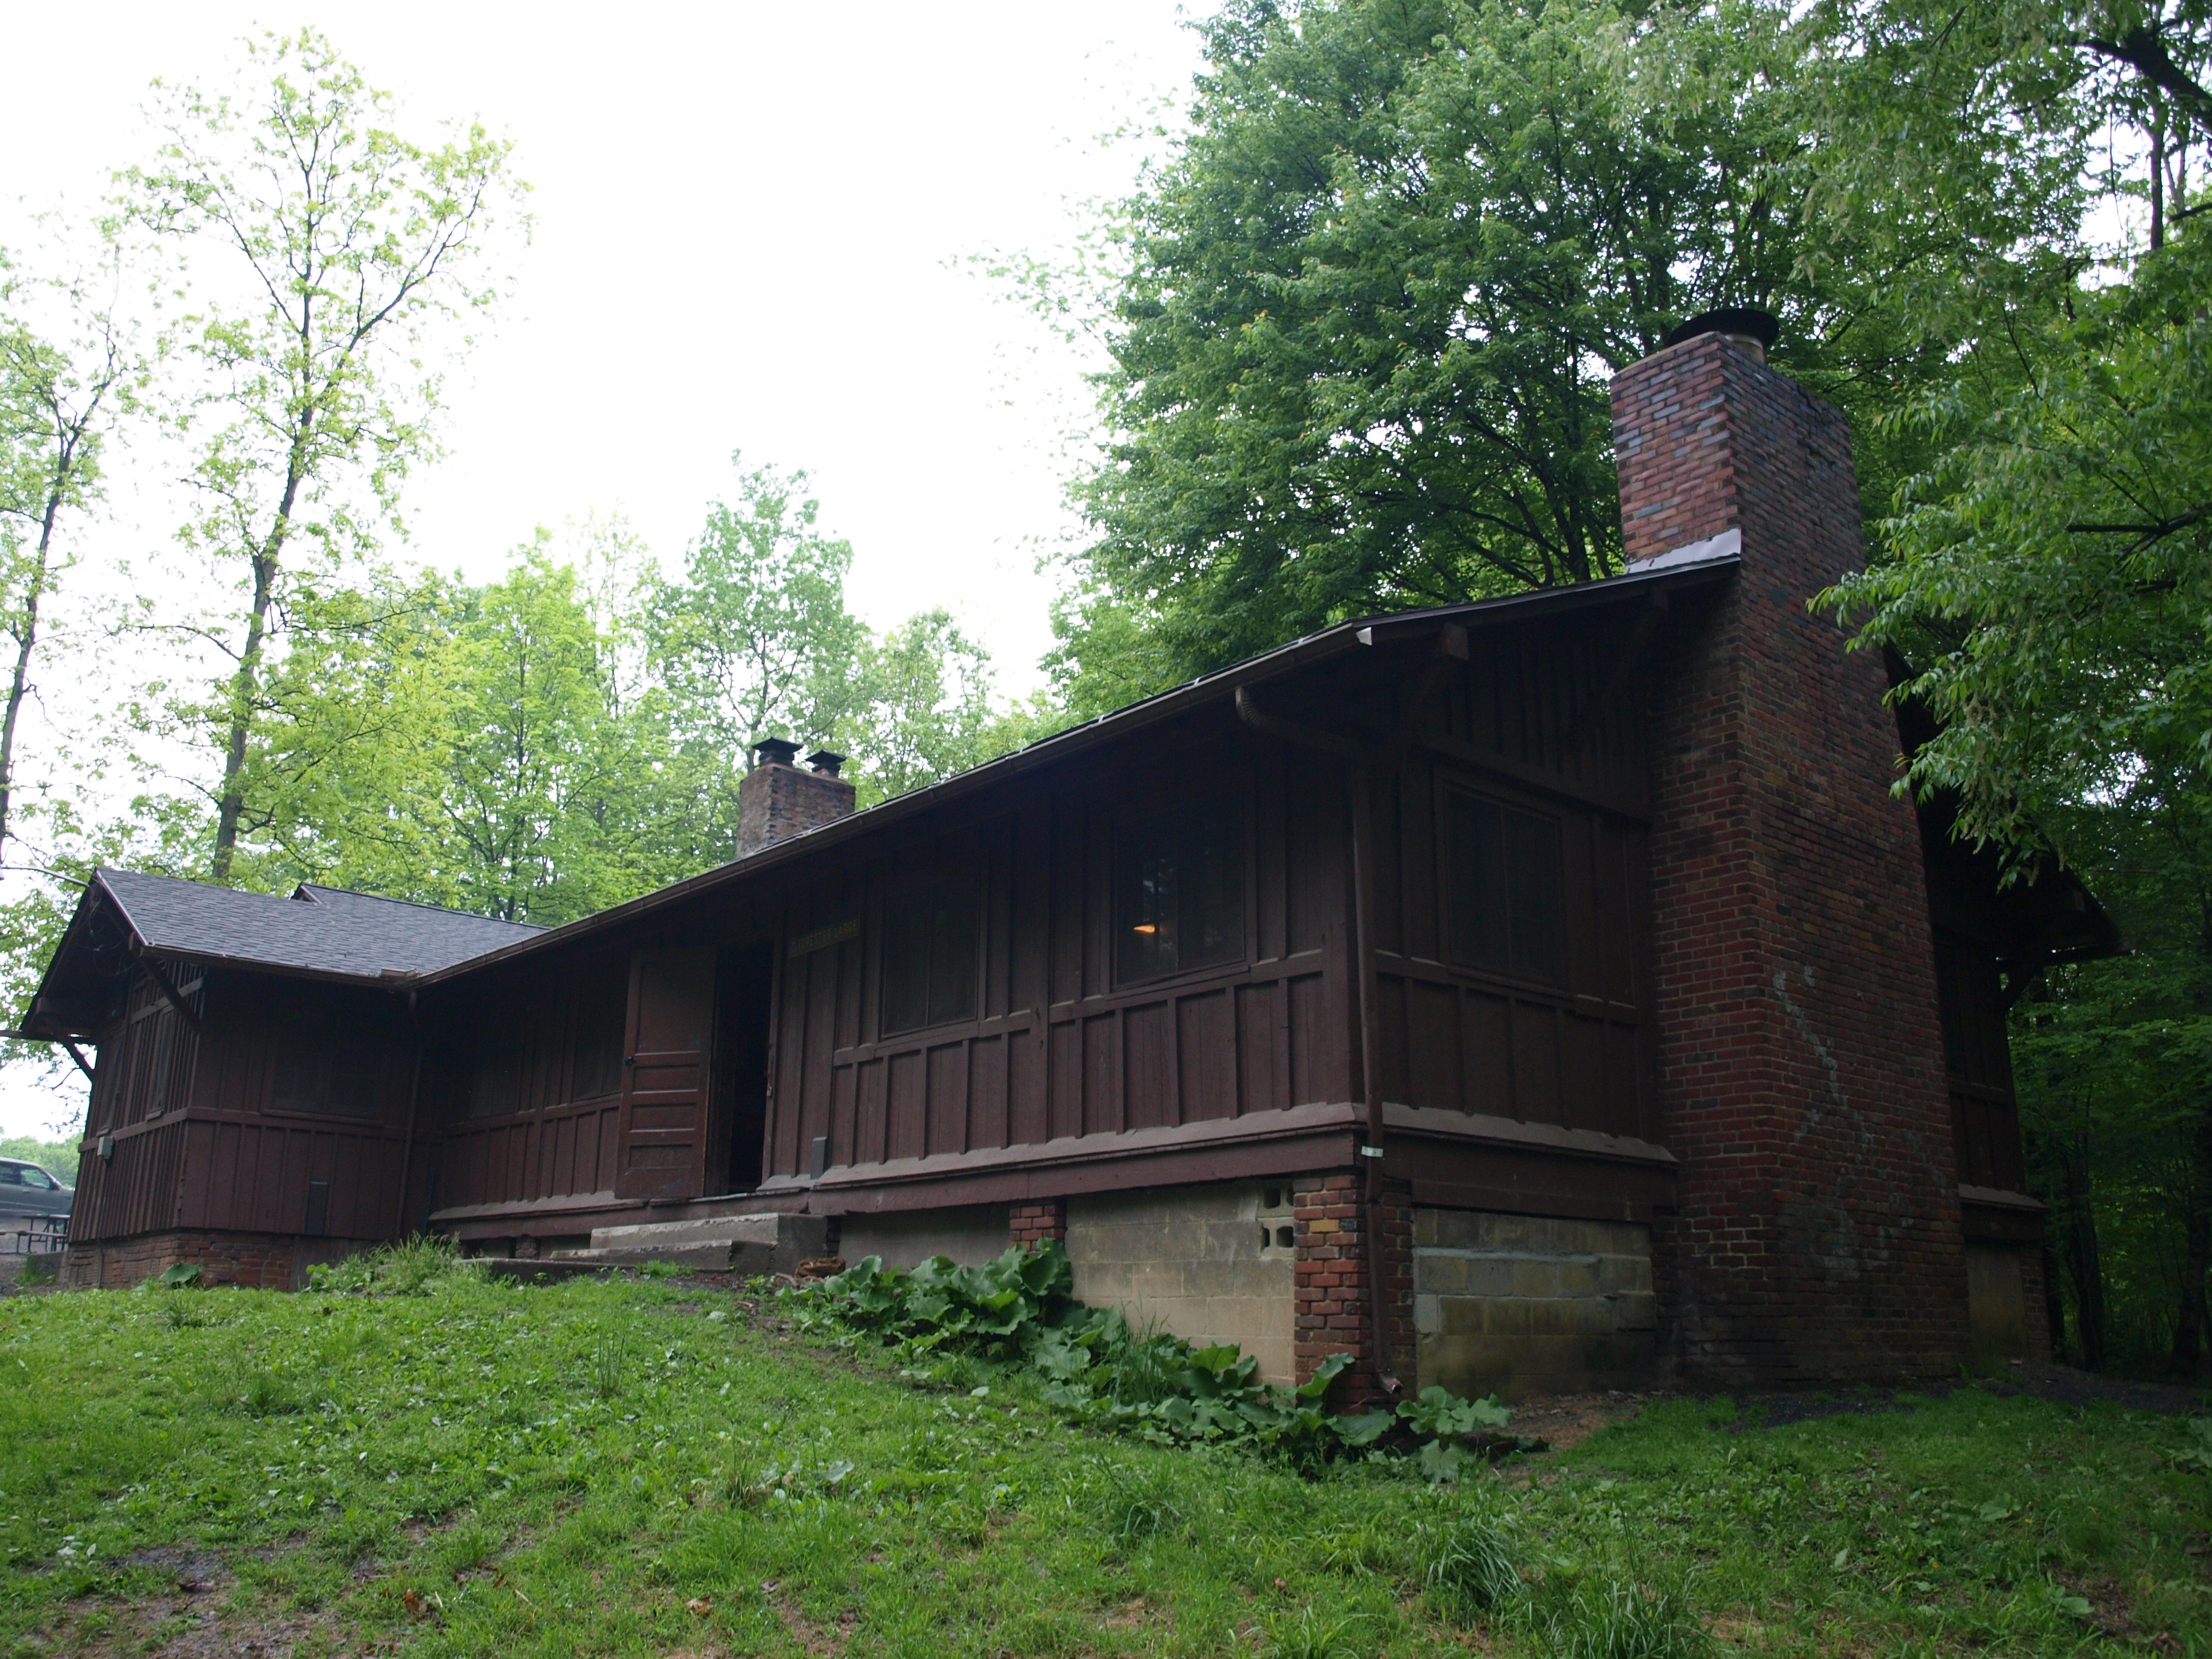 flint wills and rentals spacious ohio kitchen ridge in glenford fully cabins furnished rental cabin